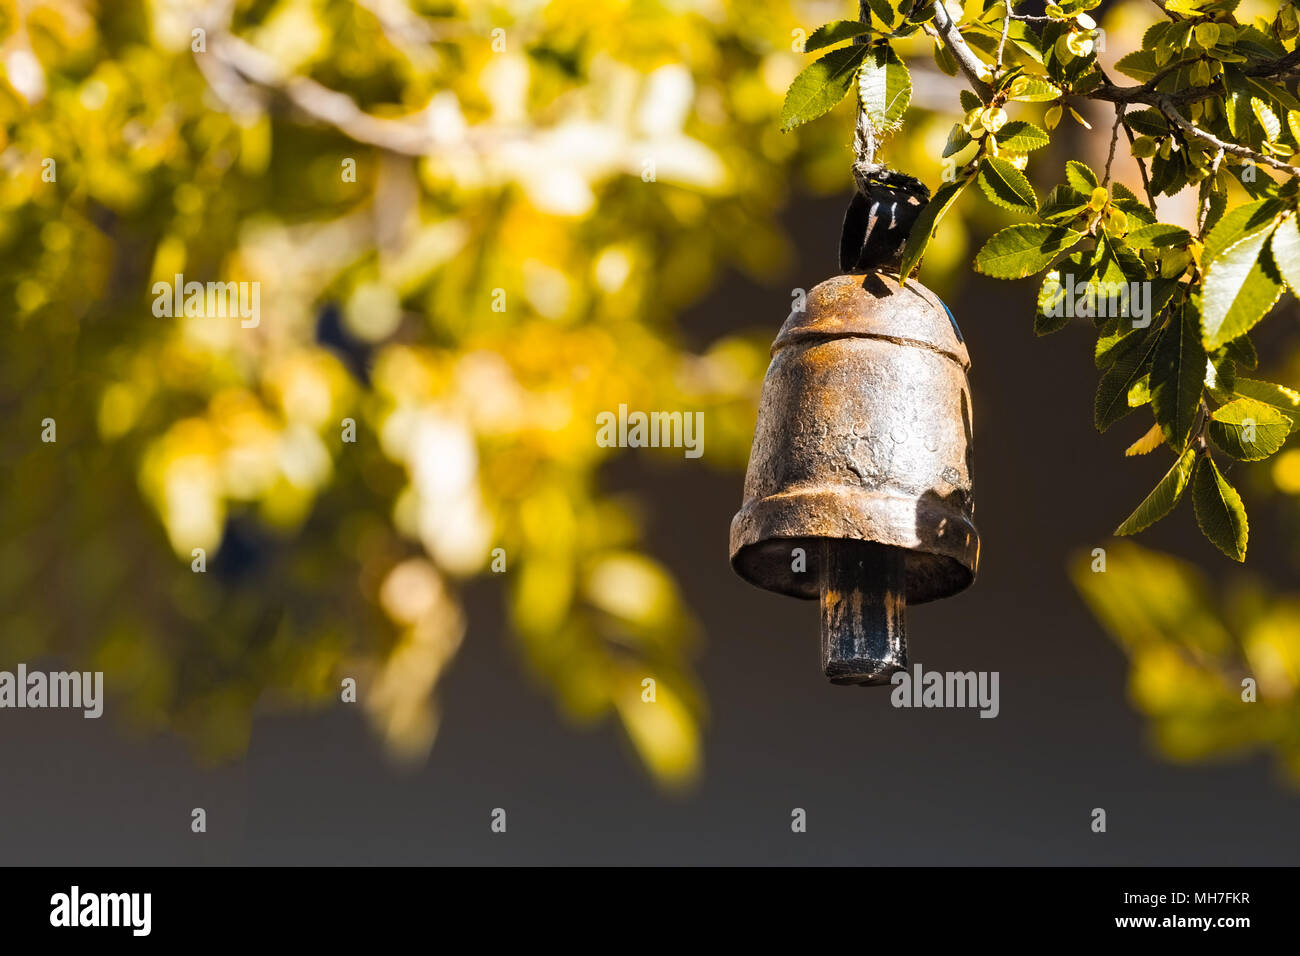 Bronze temple ritual bell - spiritual concept with copy space - Stock Image